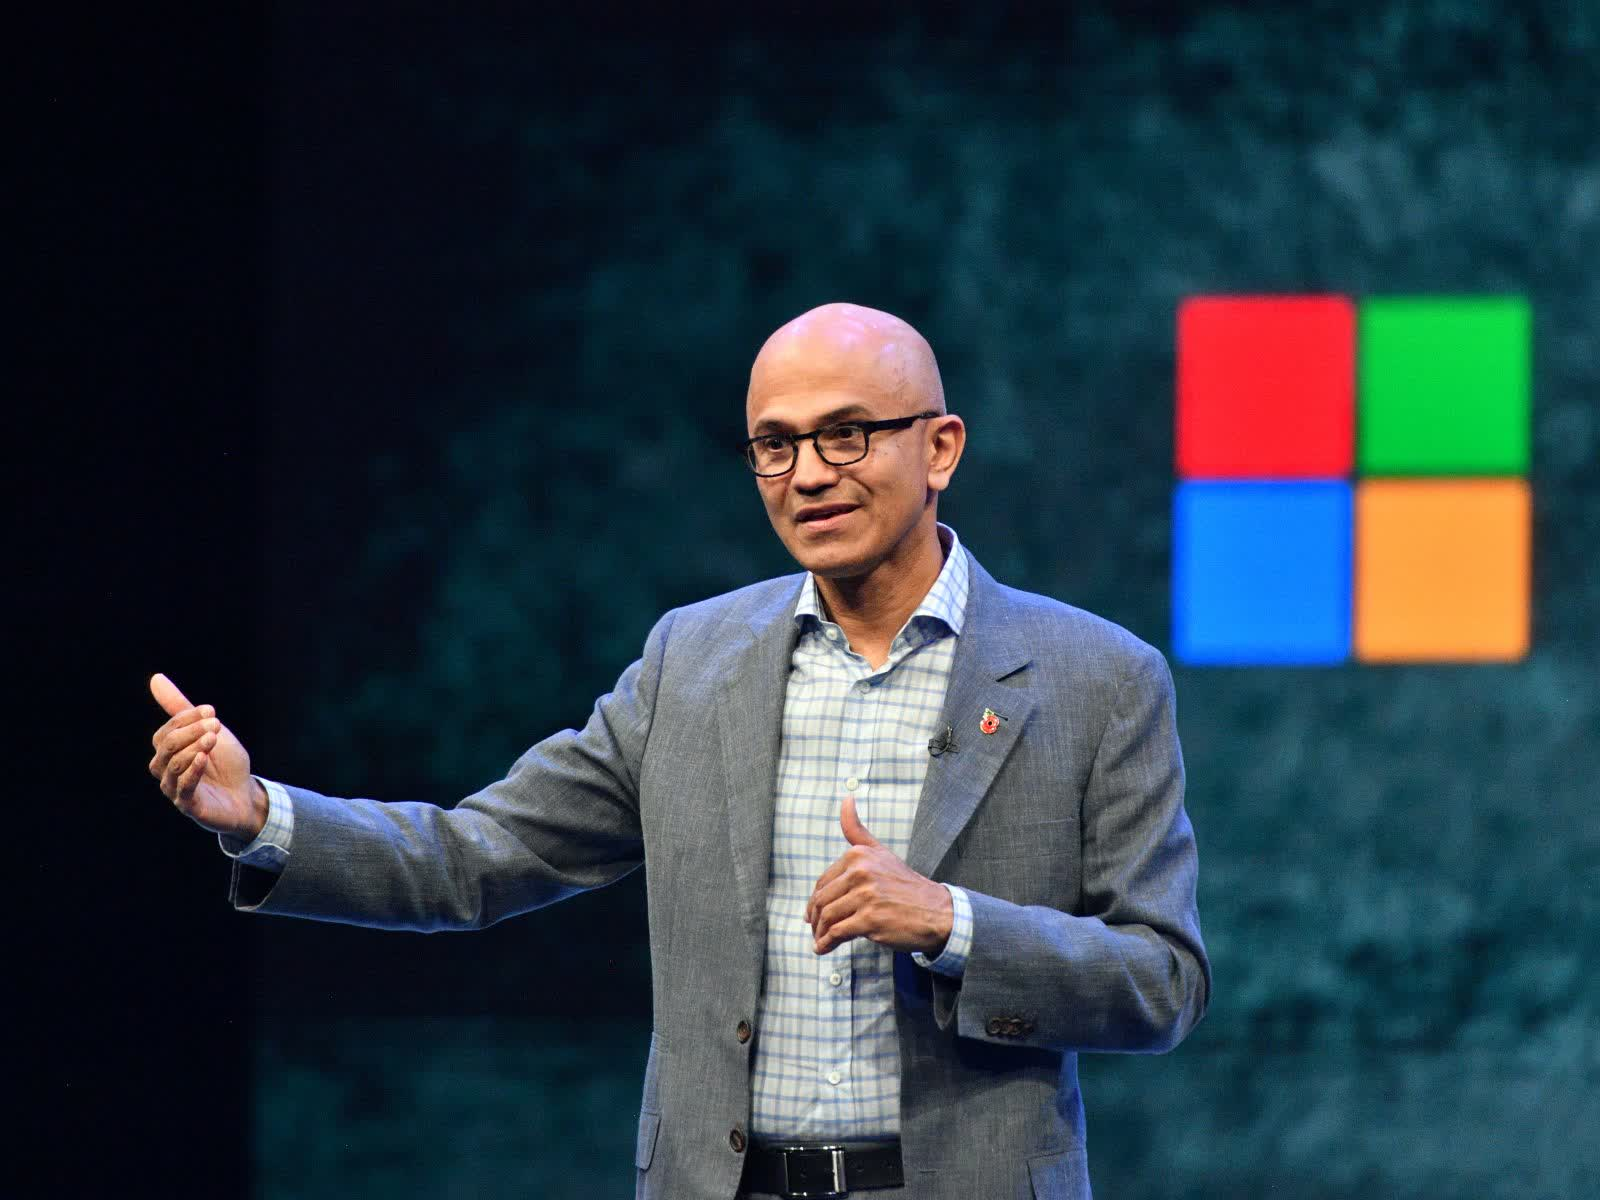 Satya Nadella, CEO of Microsoft, is now chairman of the board